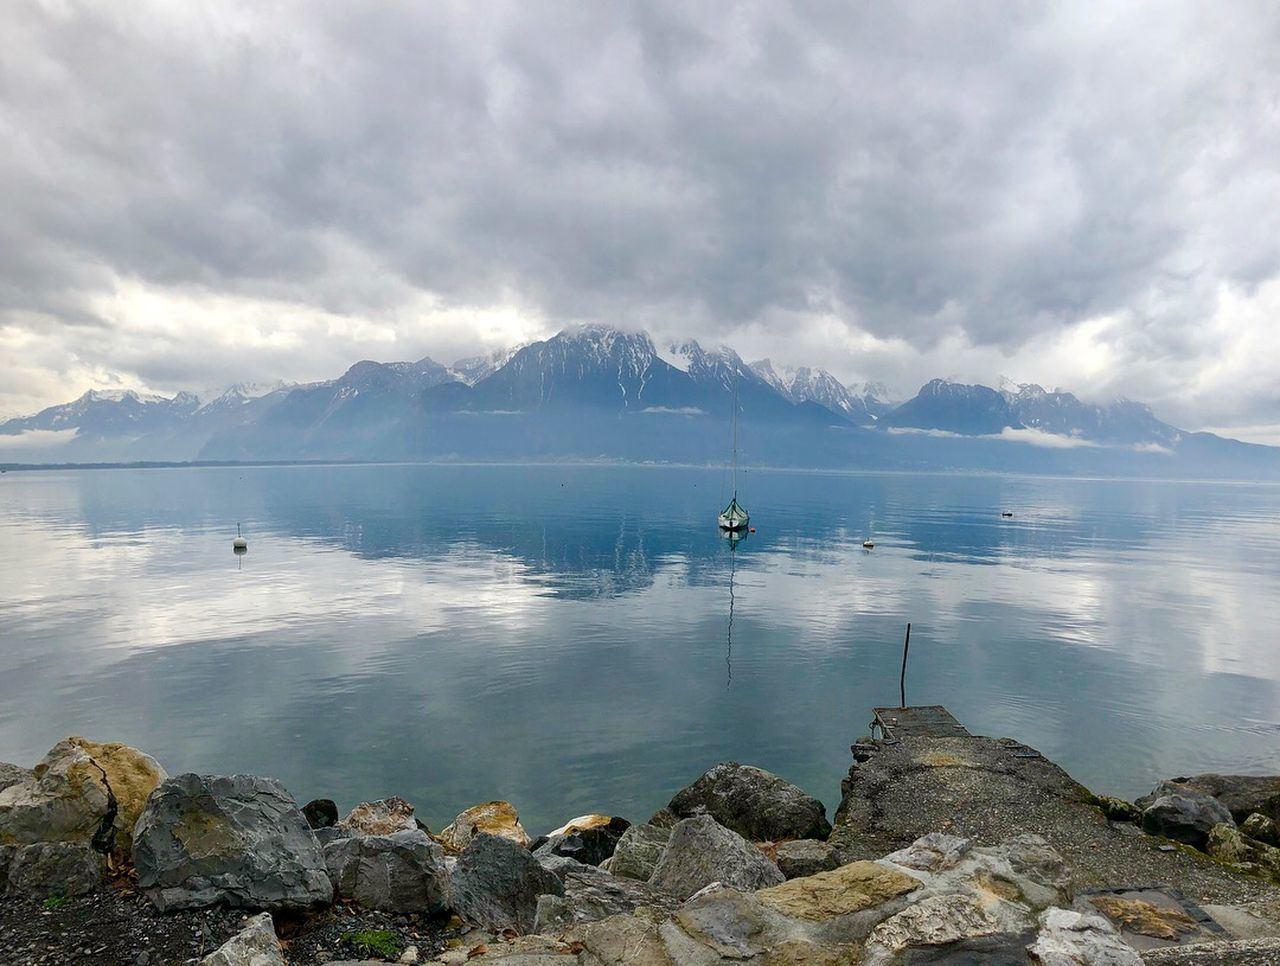 cloud - sky, water, mountain, sky, beauty in nature, scenics - nature, tranquility, tranquil scene, rock, rock - object, solid, nautical vessel, sea, nature, mountain range, day, idyllic, non-urban scene, outdoors, snowcapped mountain